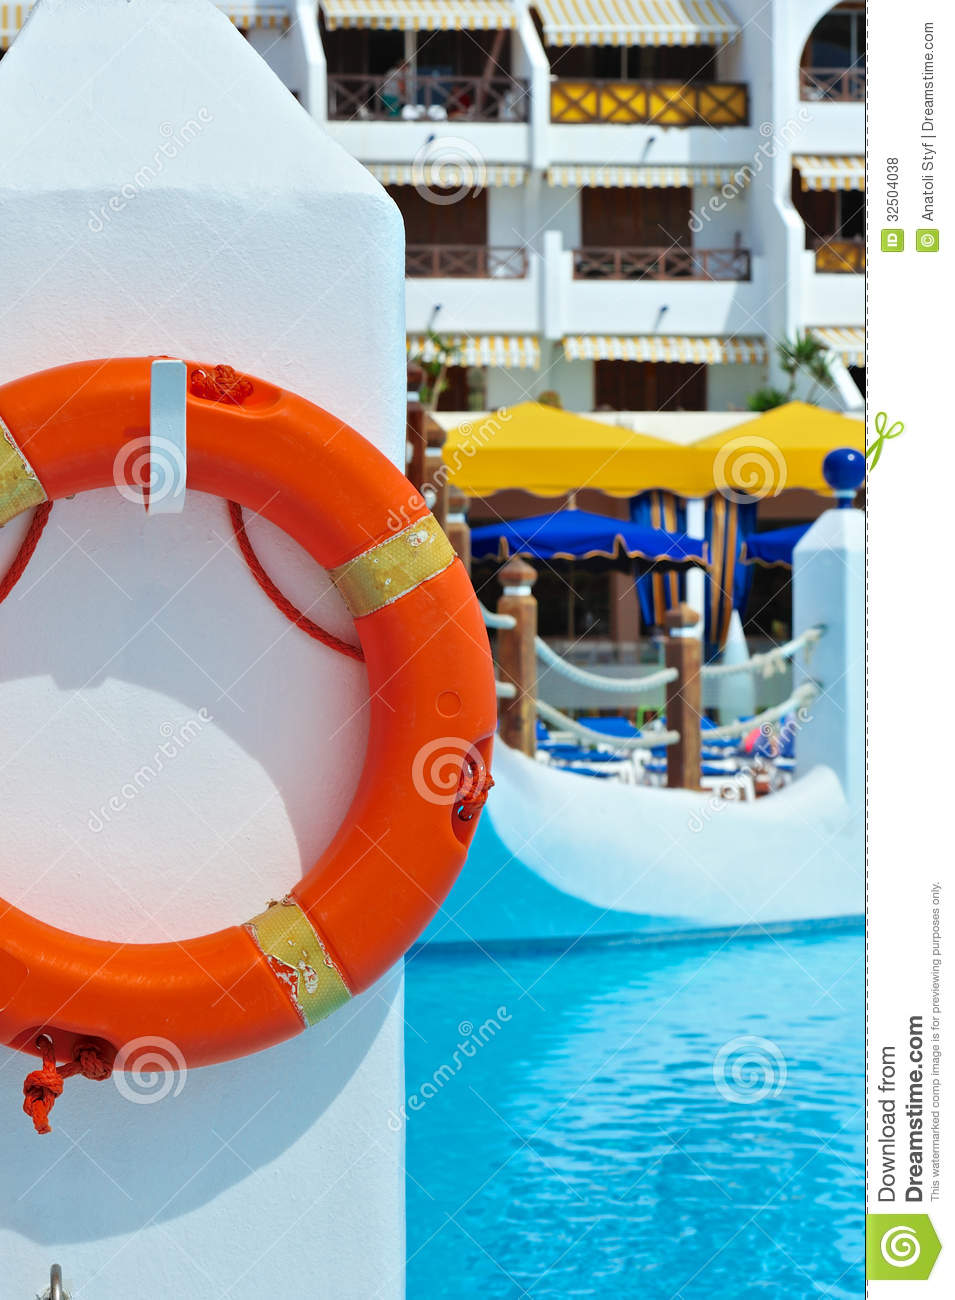 Lifebuoy royalty free stock photos image